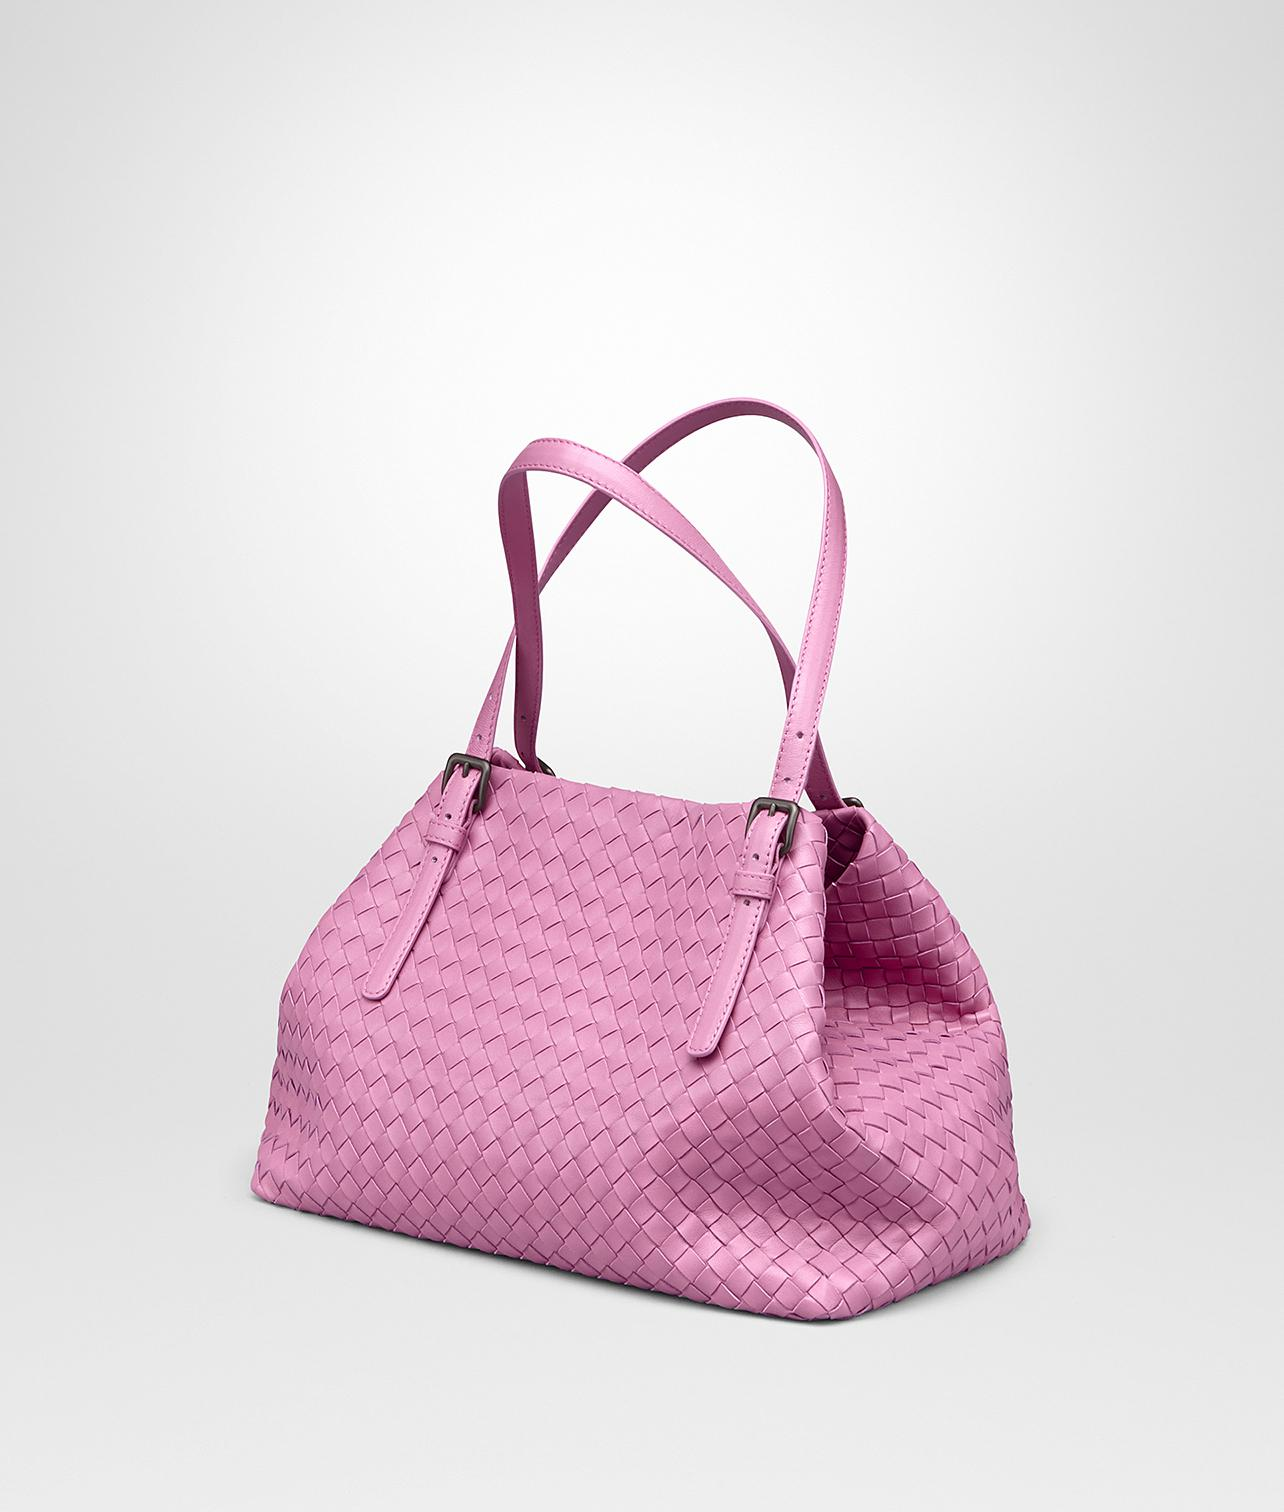 c84558703a Bottega Veneta - Pink Twilight Intrecciato Nappa Medium Cesta Bag - Lyst